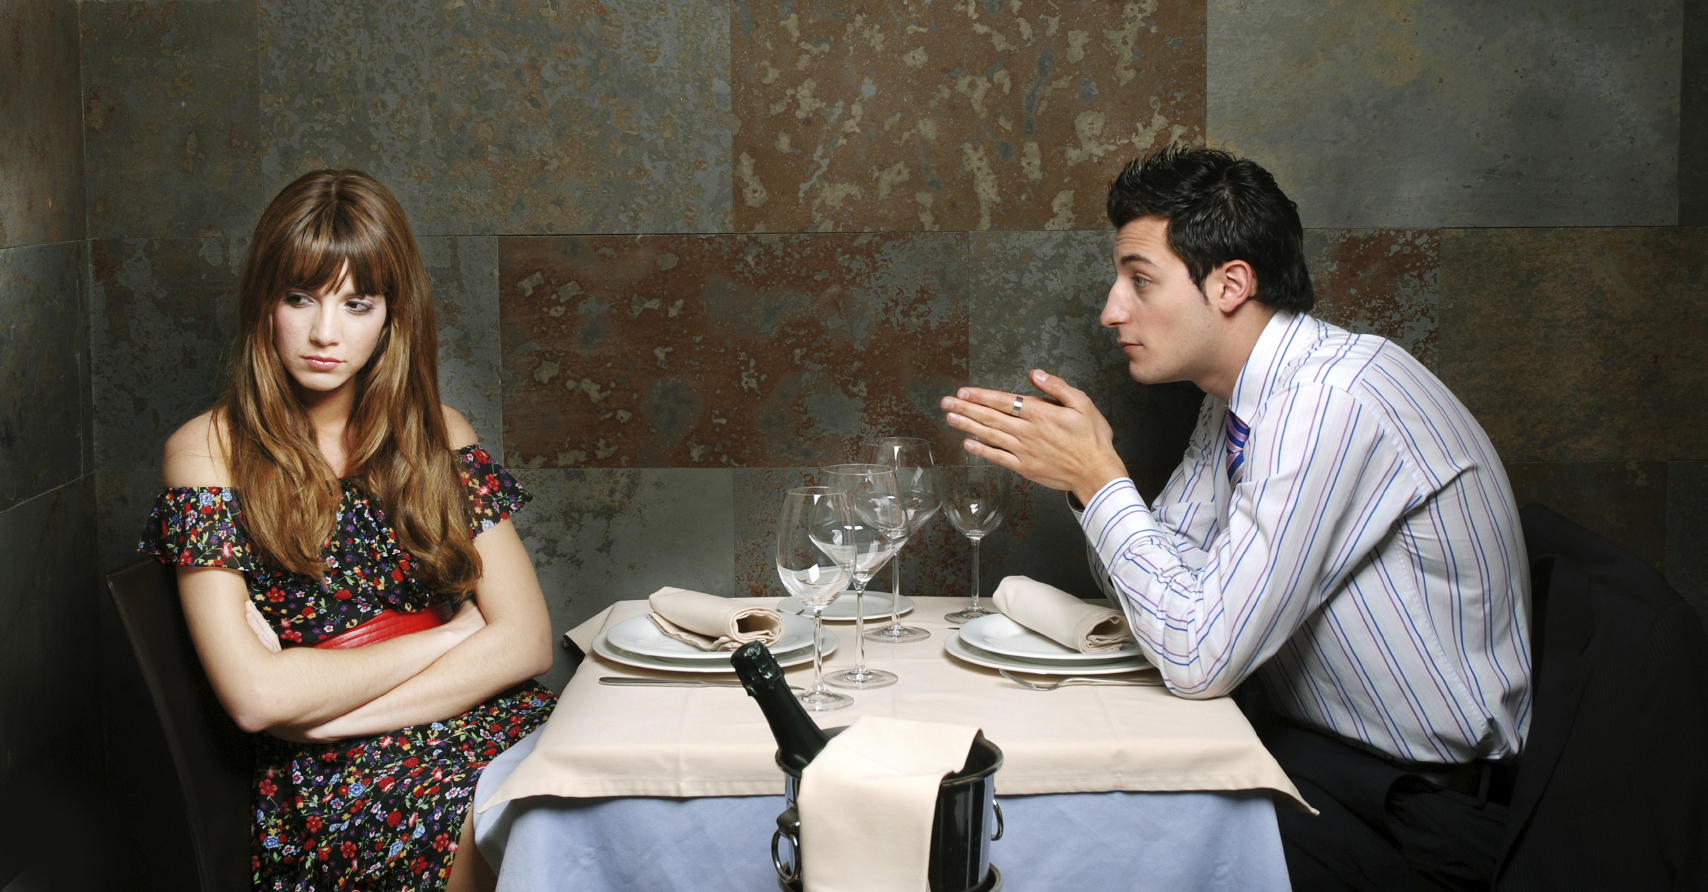 Dating Agencies In Singapore Someone is concerned Professionals